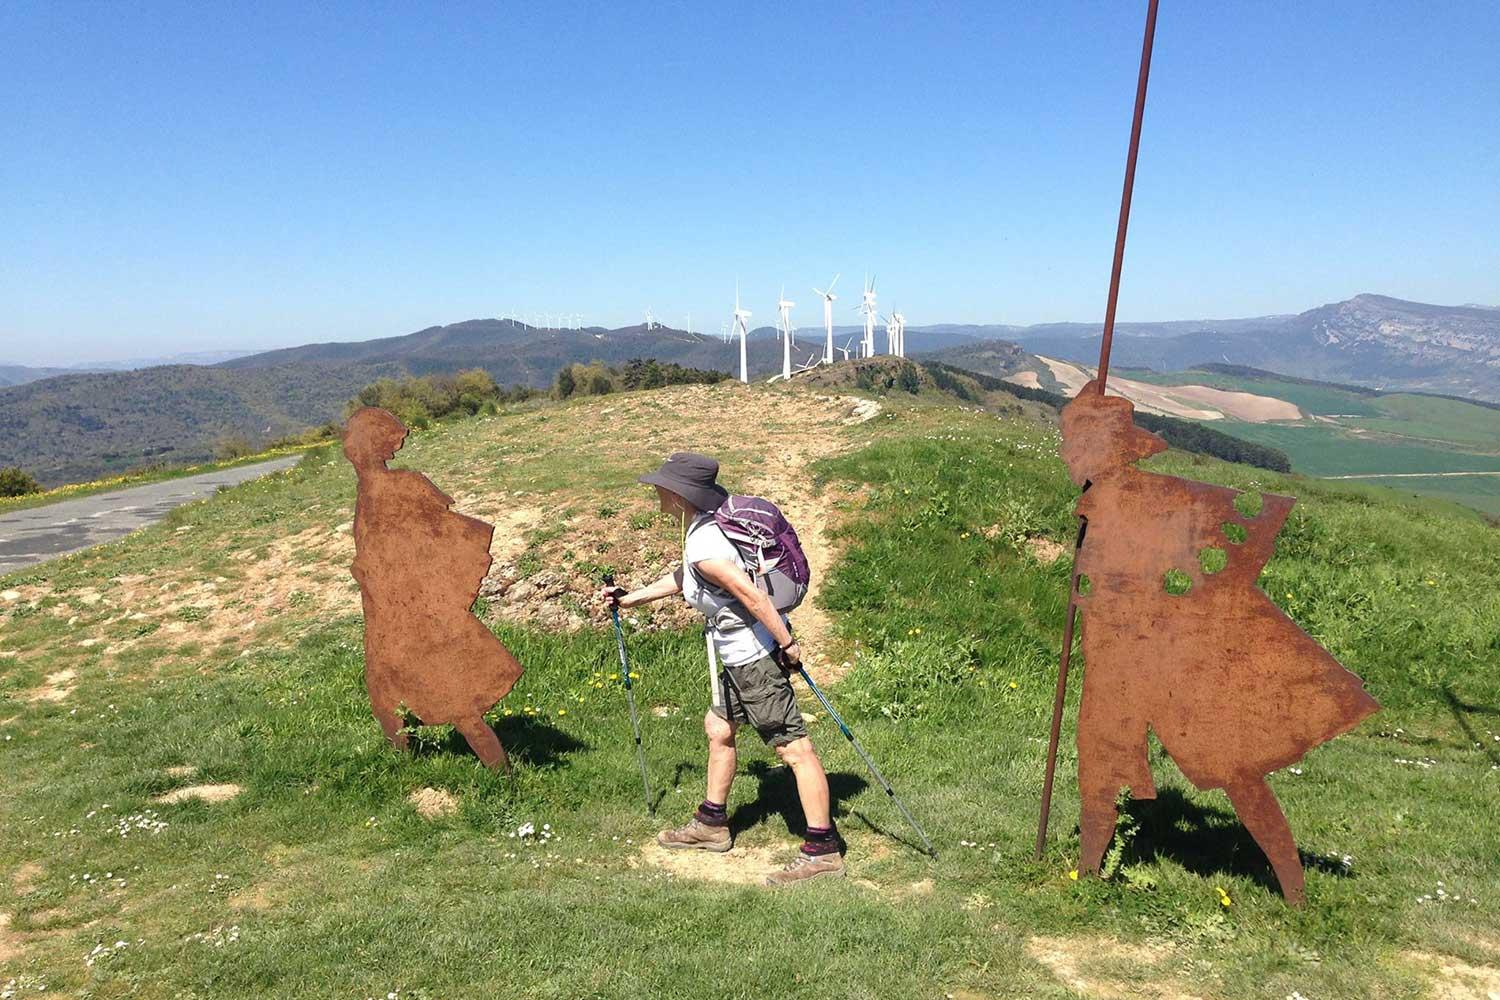 Walk the Camino Frances from St Jean to Logrono